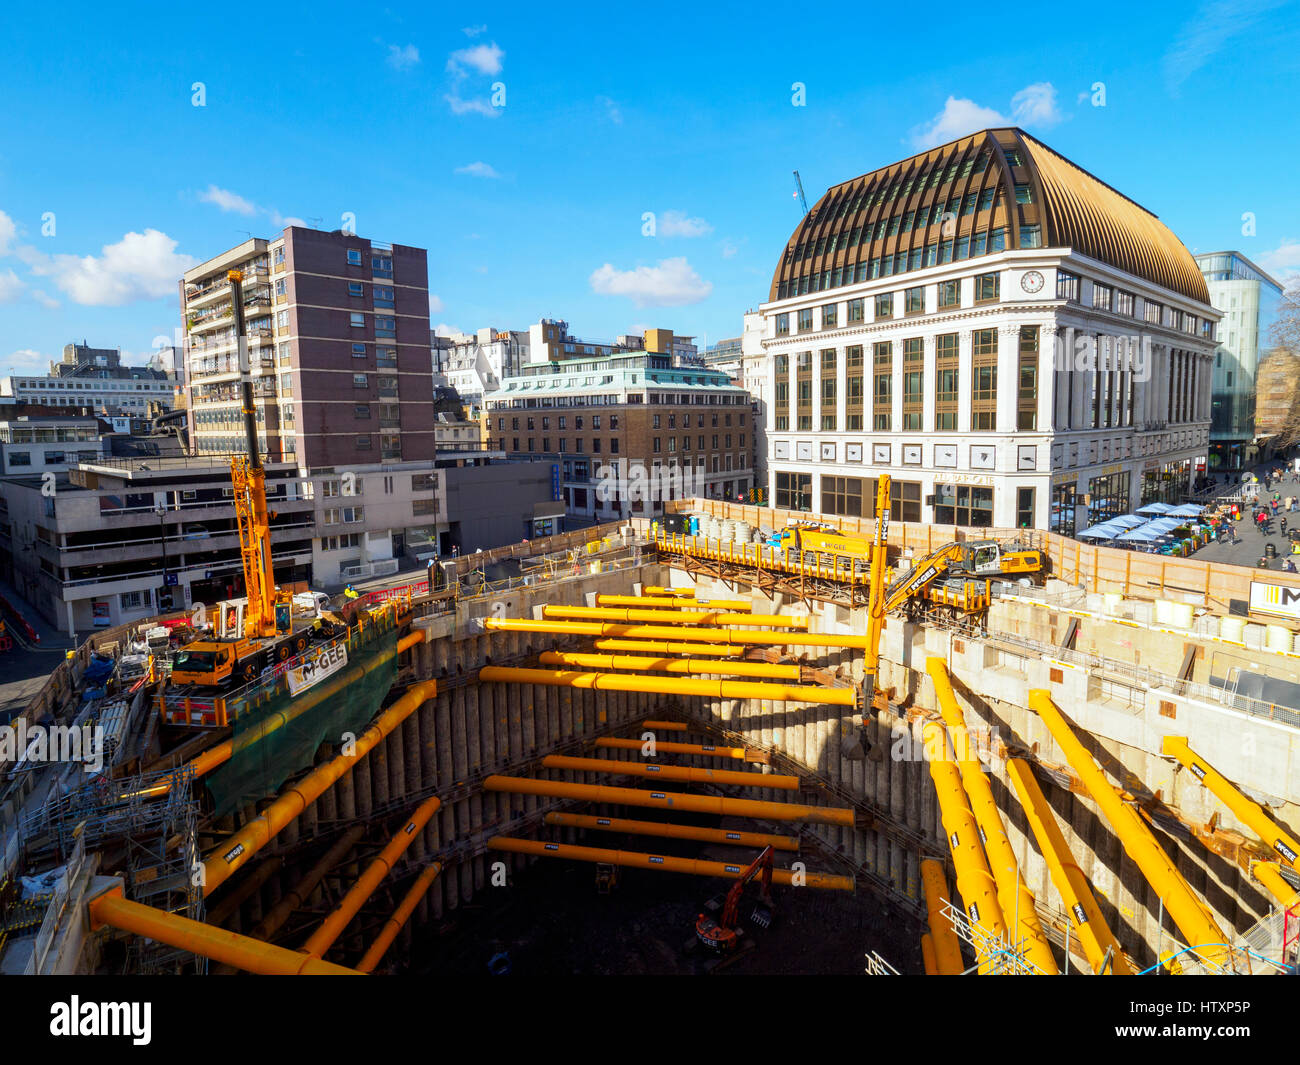 Building site near Leicester square - London, England Stock Photo